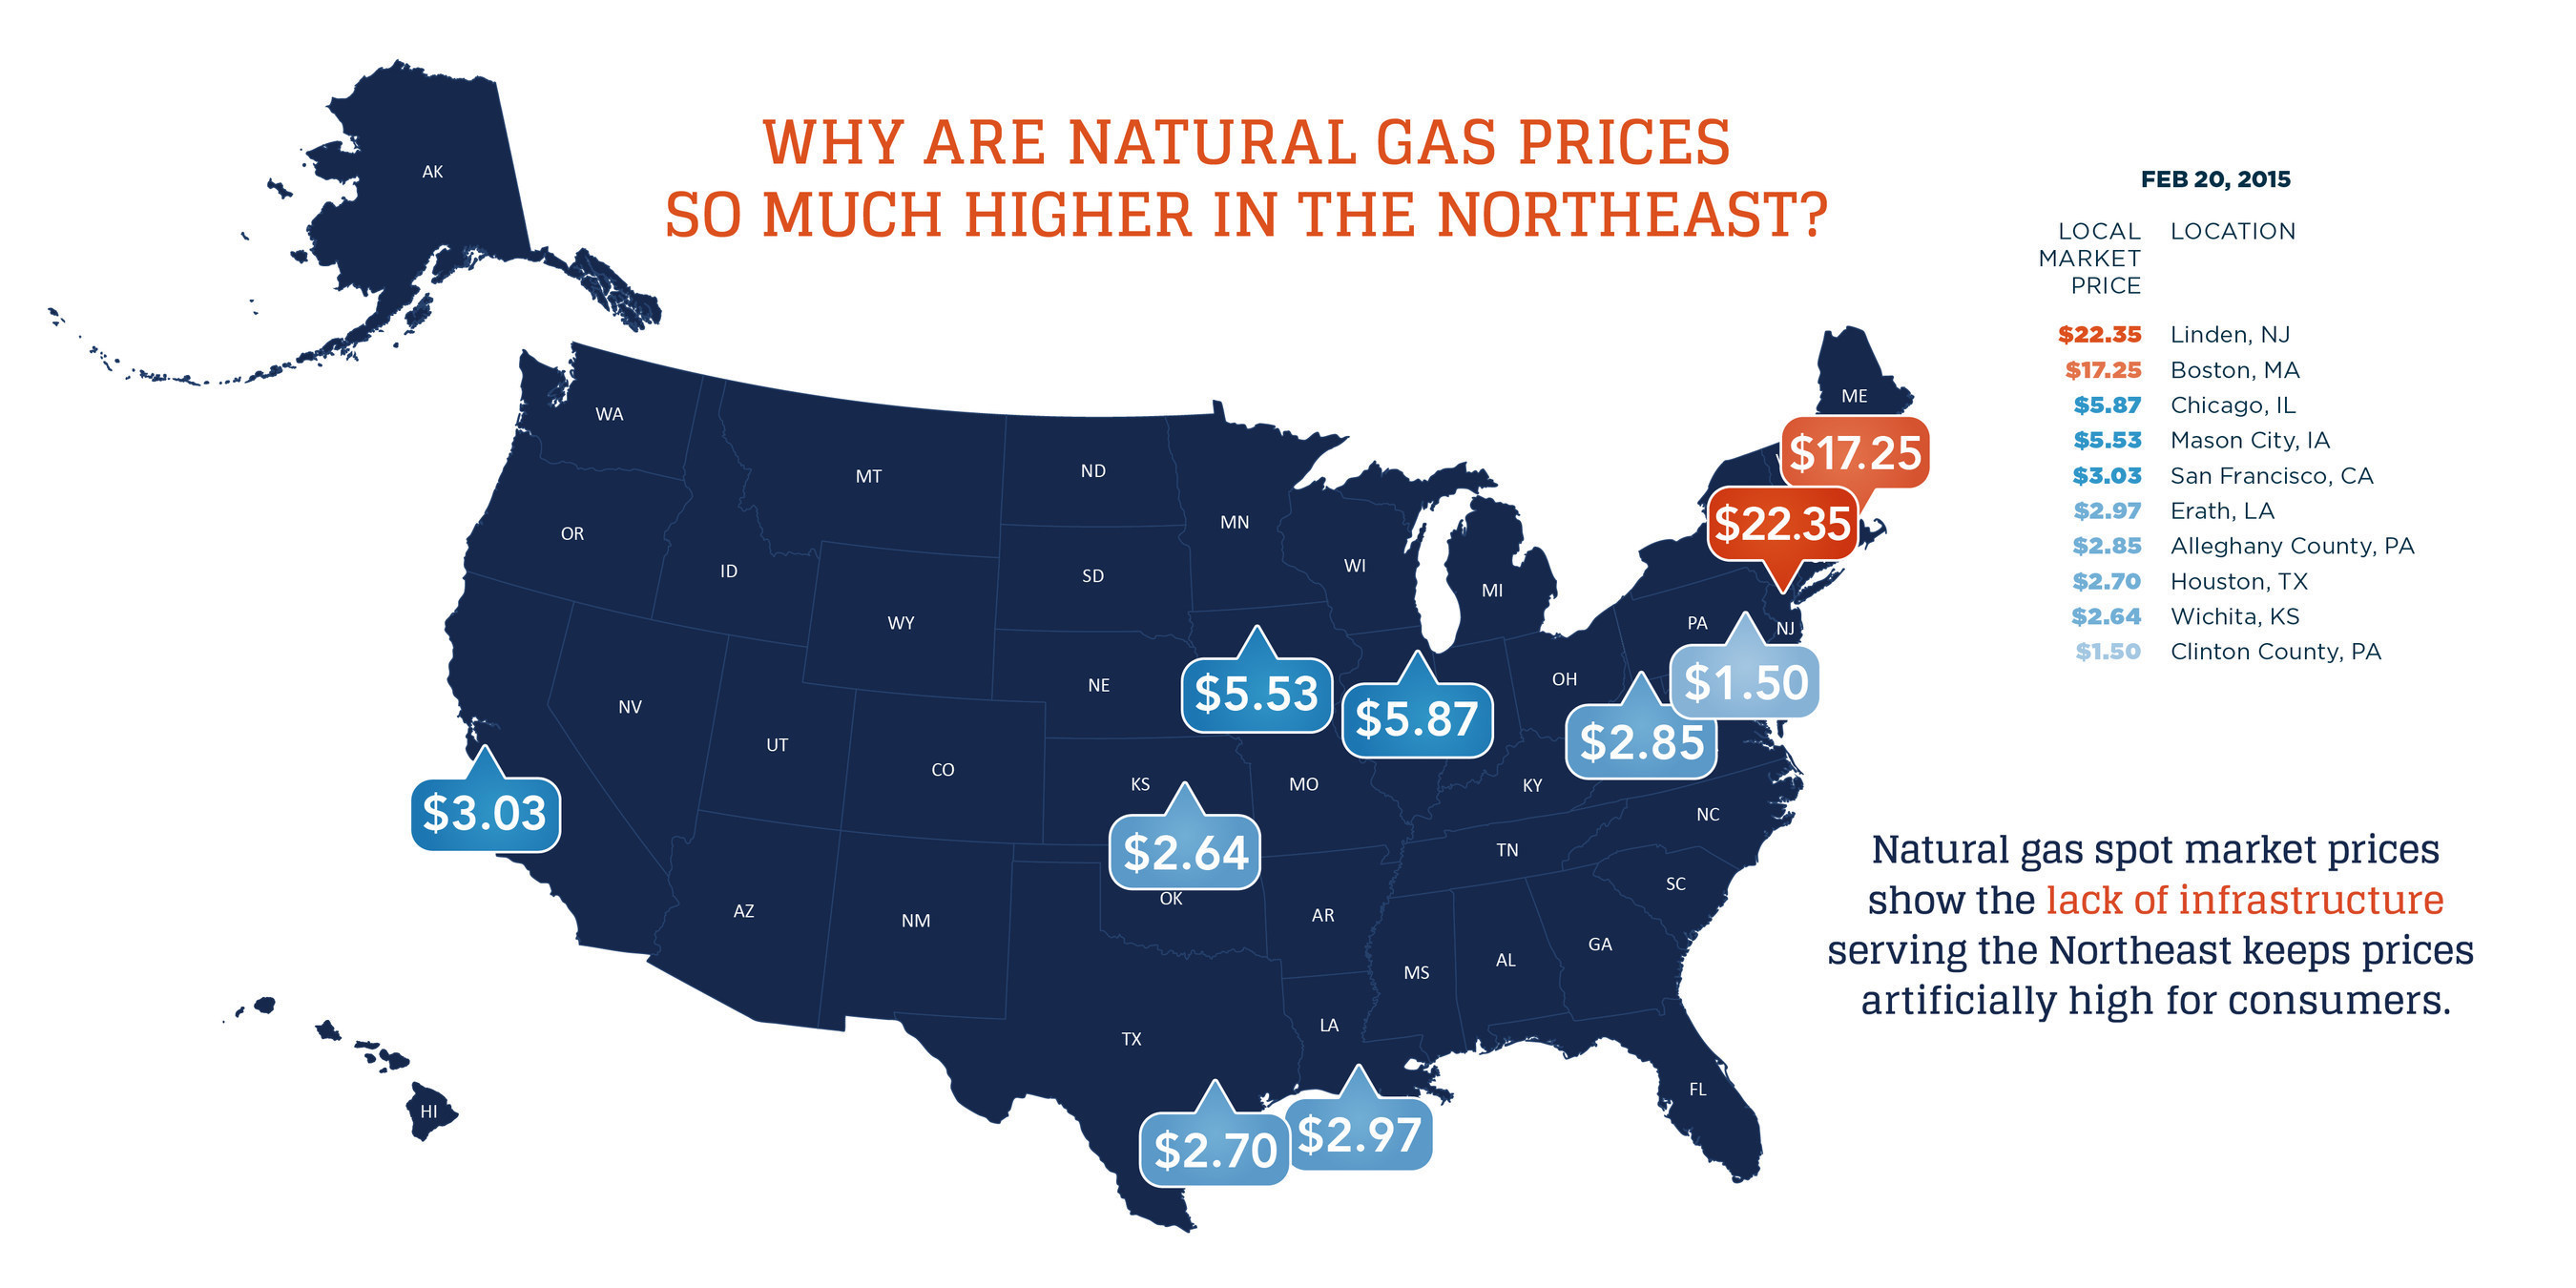 Americas Natural Gas Alliance Lack of Infrastructure | North ... on chicago politics, chicago natural gas map, chicago obituaries, chicago economy map, chicago homicide map, gas price heat map, chicago heat map, chicago driving map, chicago food map, chicago memorial day map, chicago restaurants map, chicago travel map, chicago traffic map, chicago terrorism, chicago crime map, chicago energy, gasoline price heat map, chicago water map, chicago environment, chicago california map,